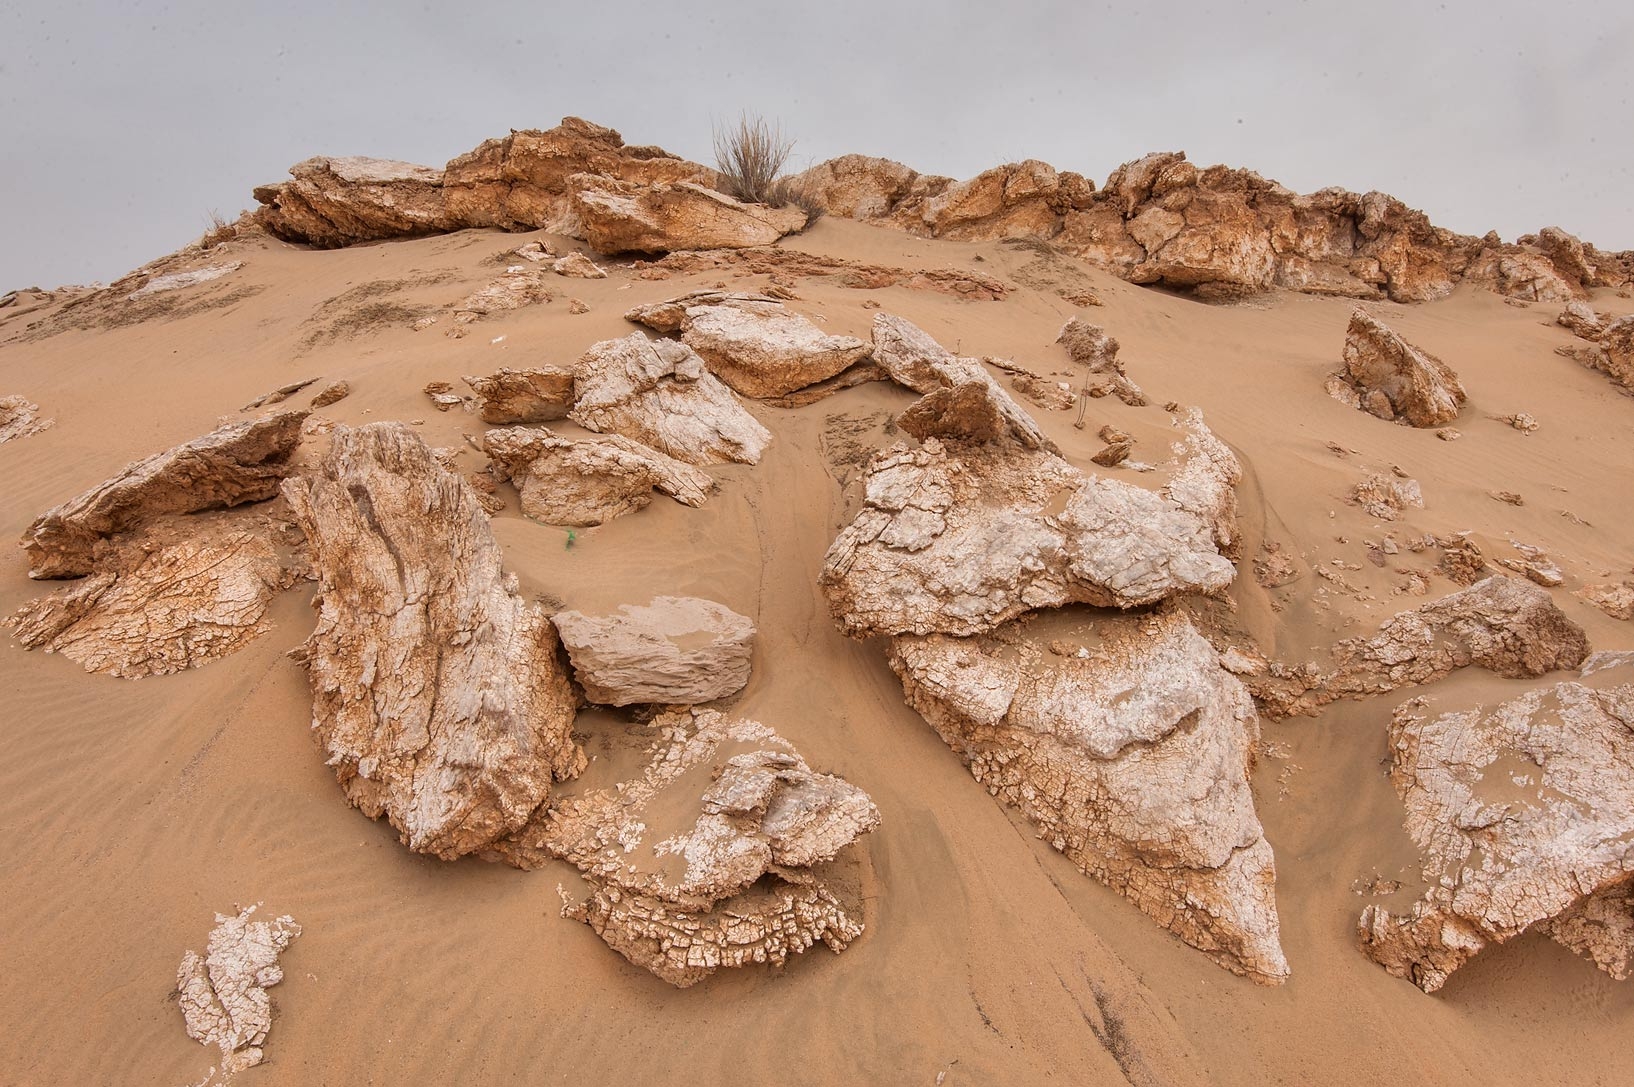 Gypsum rocks (selenite) in area of Nakhsh Mountain near Salwa Rd. in southern Qatar